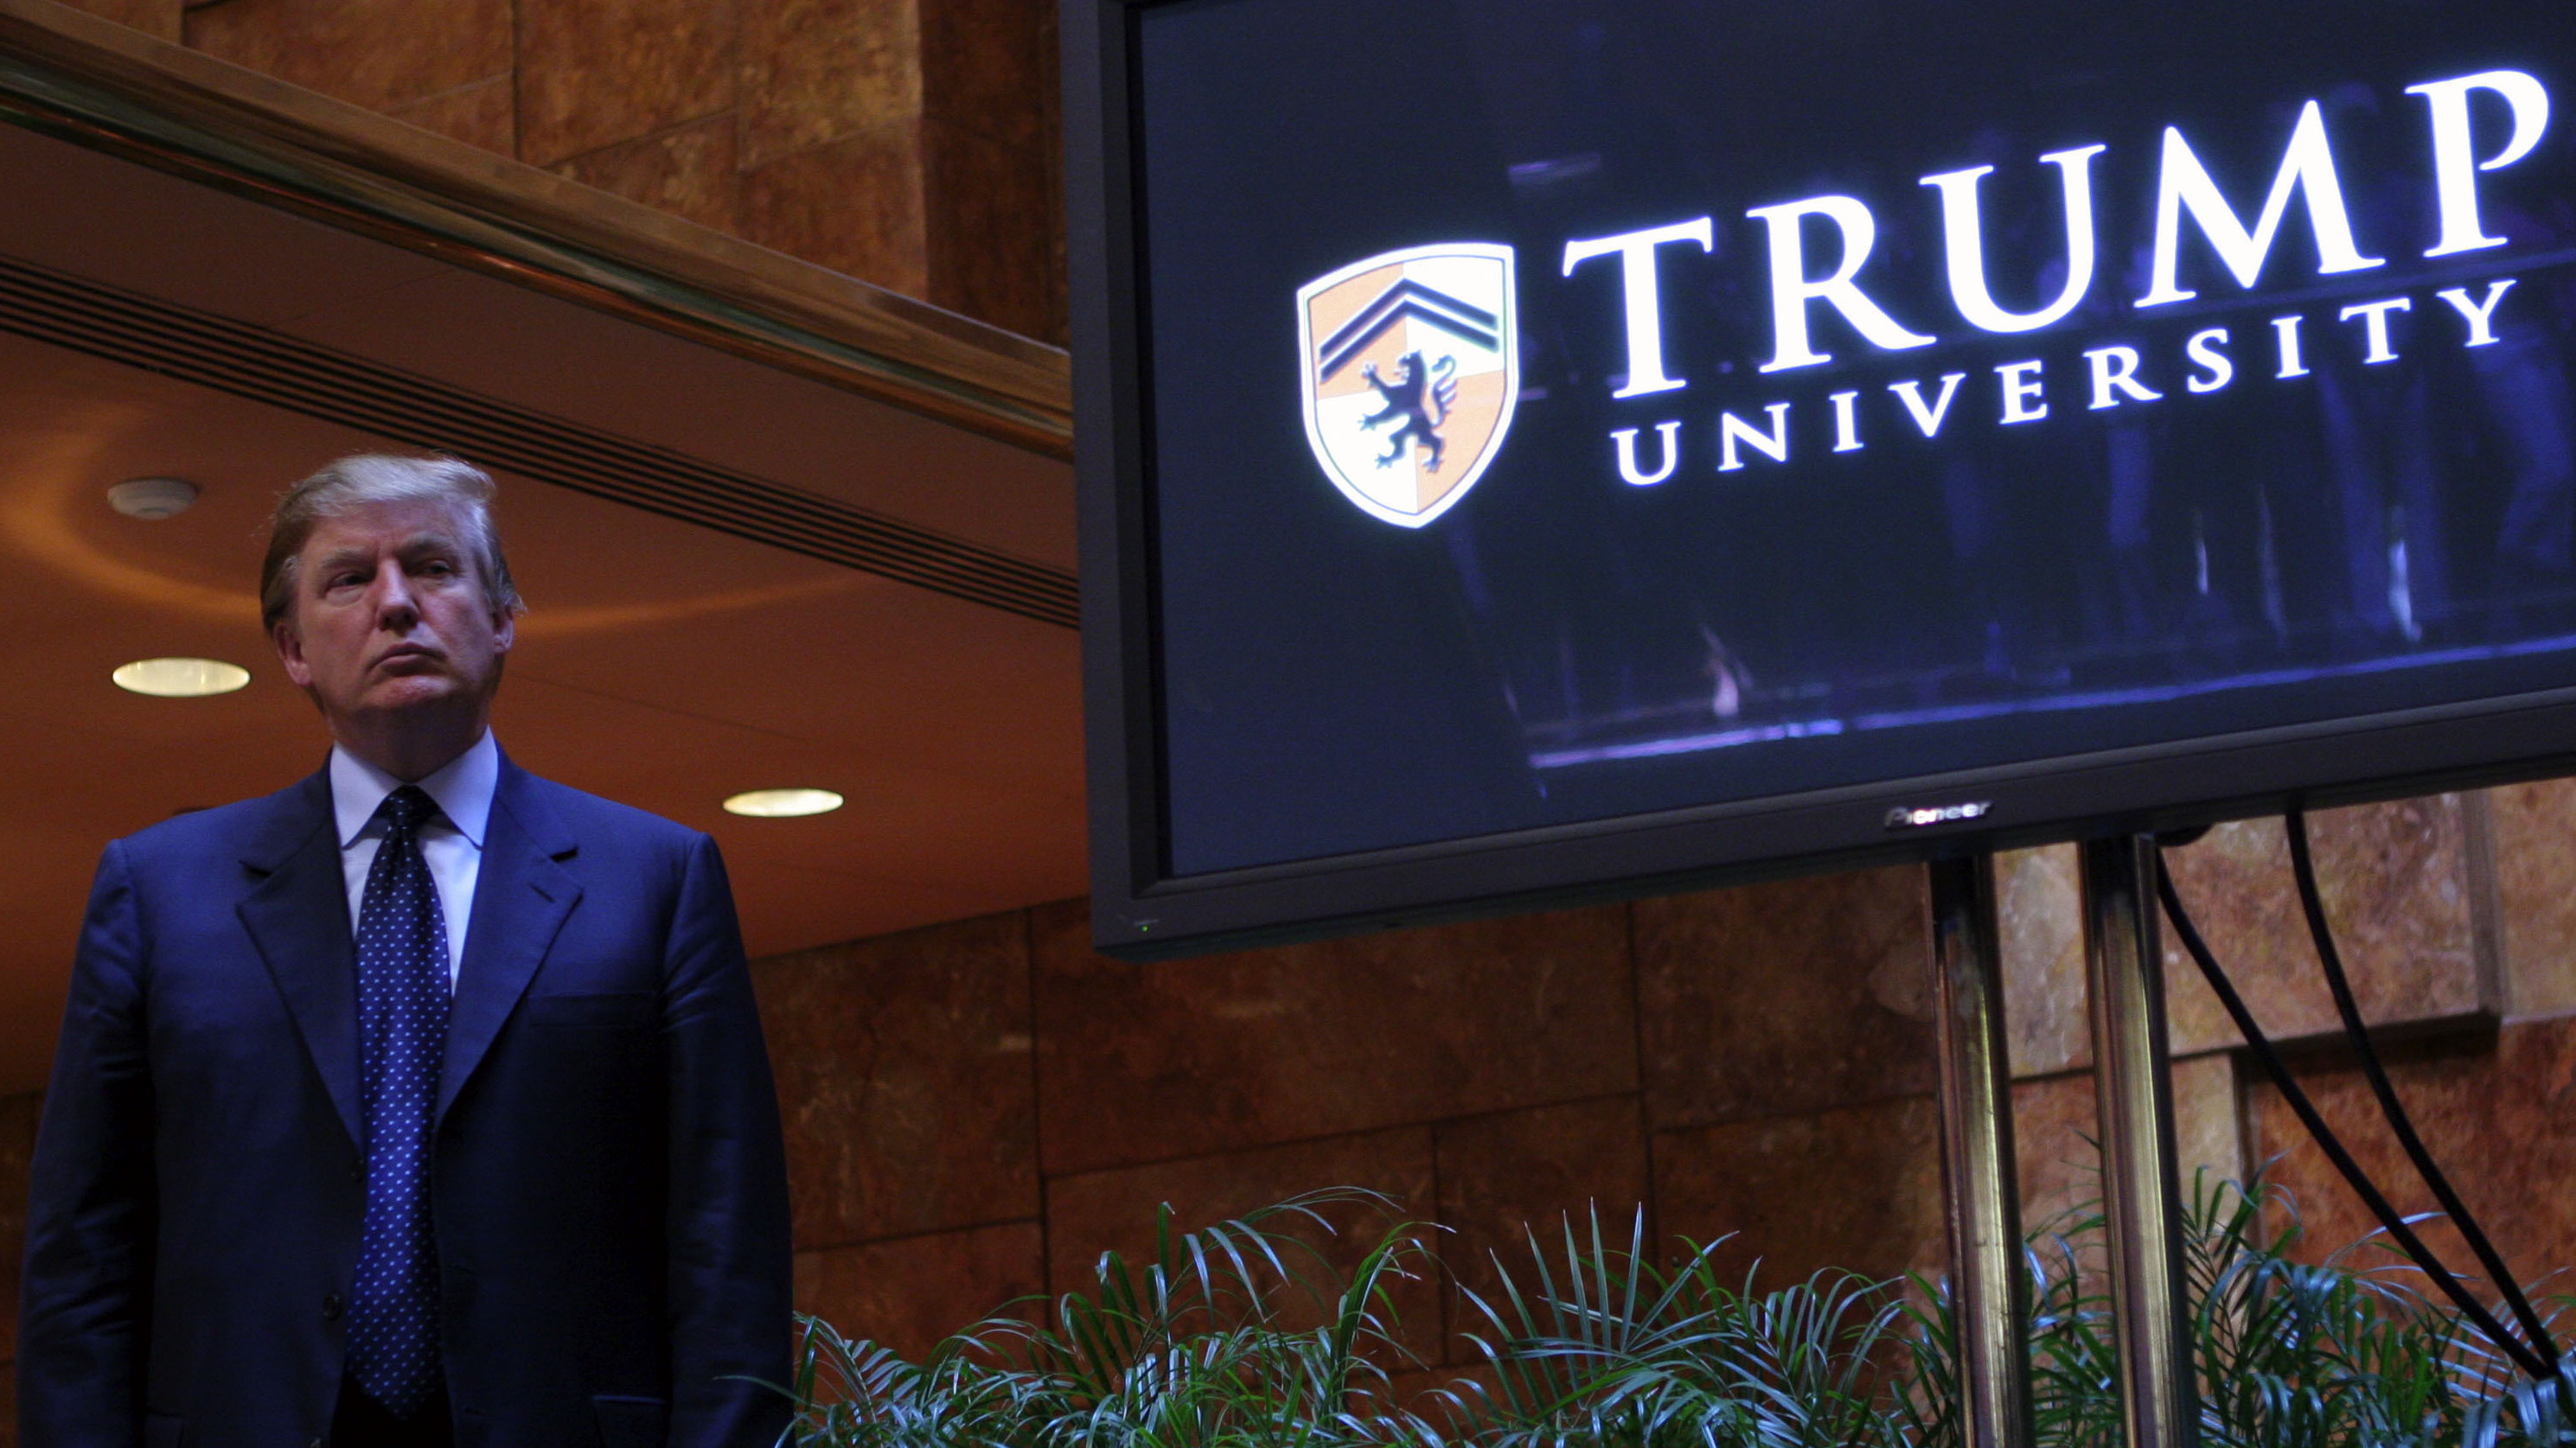 Trump University Is Like Other For-Profit Colleges But Without The Degree